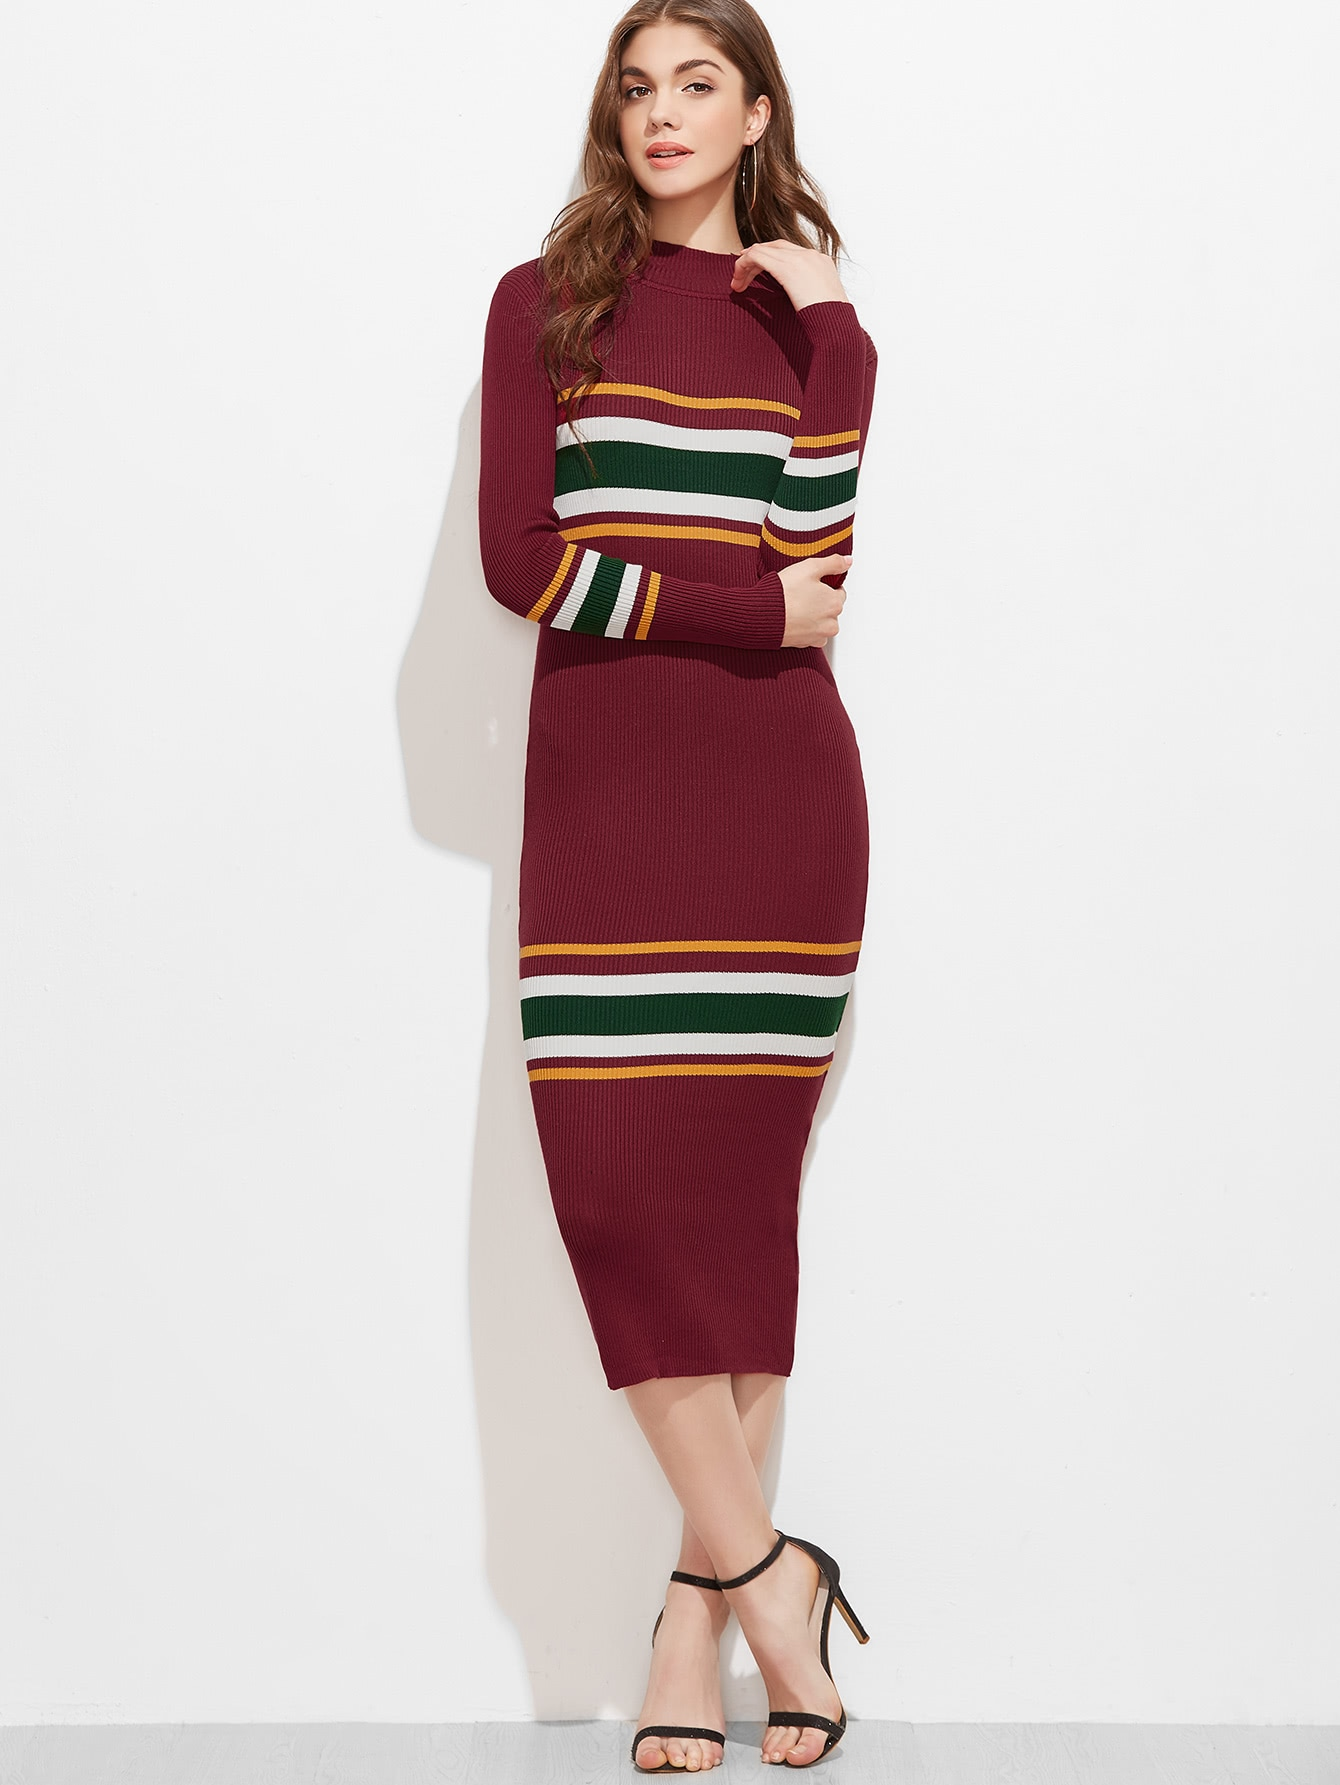 Burgundy Striped Ribbed Sweater Dress dress161209102